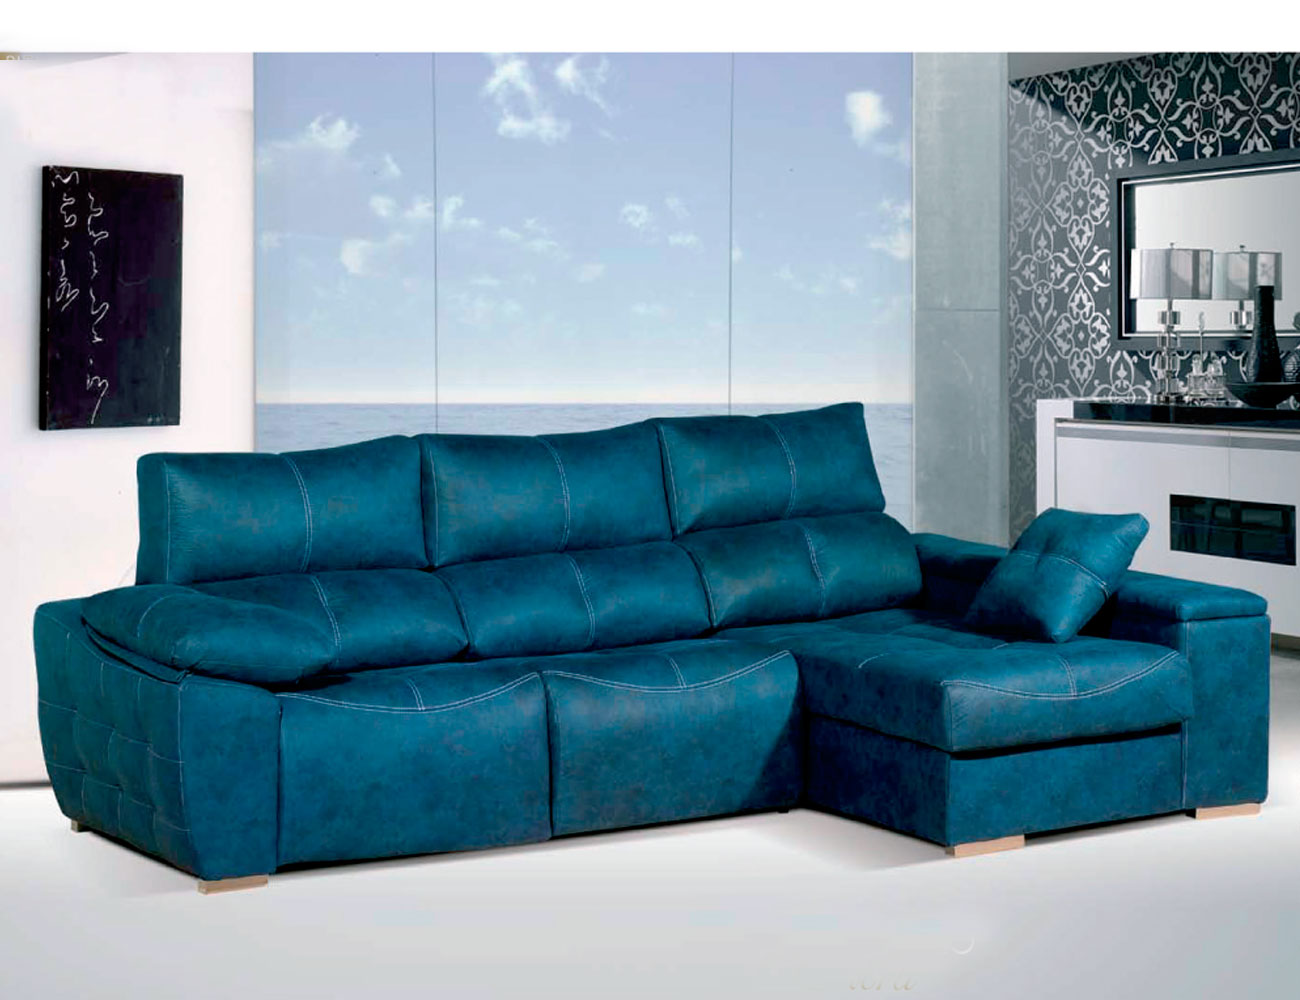 Sofa chaiselongue relax 2 motores anti manchas turquesa50